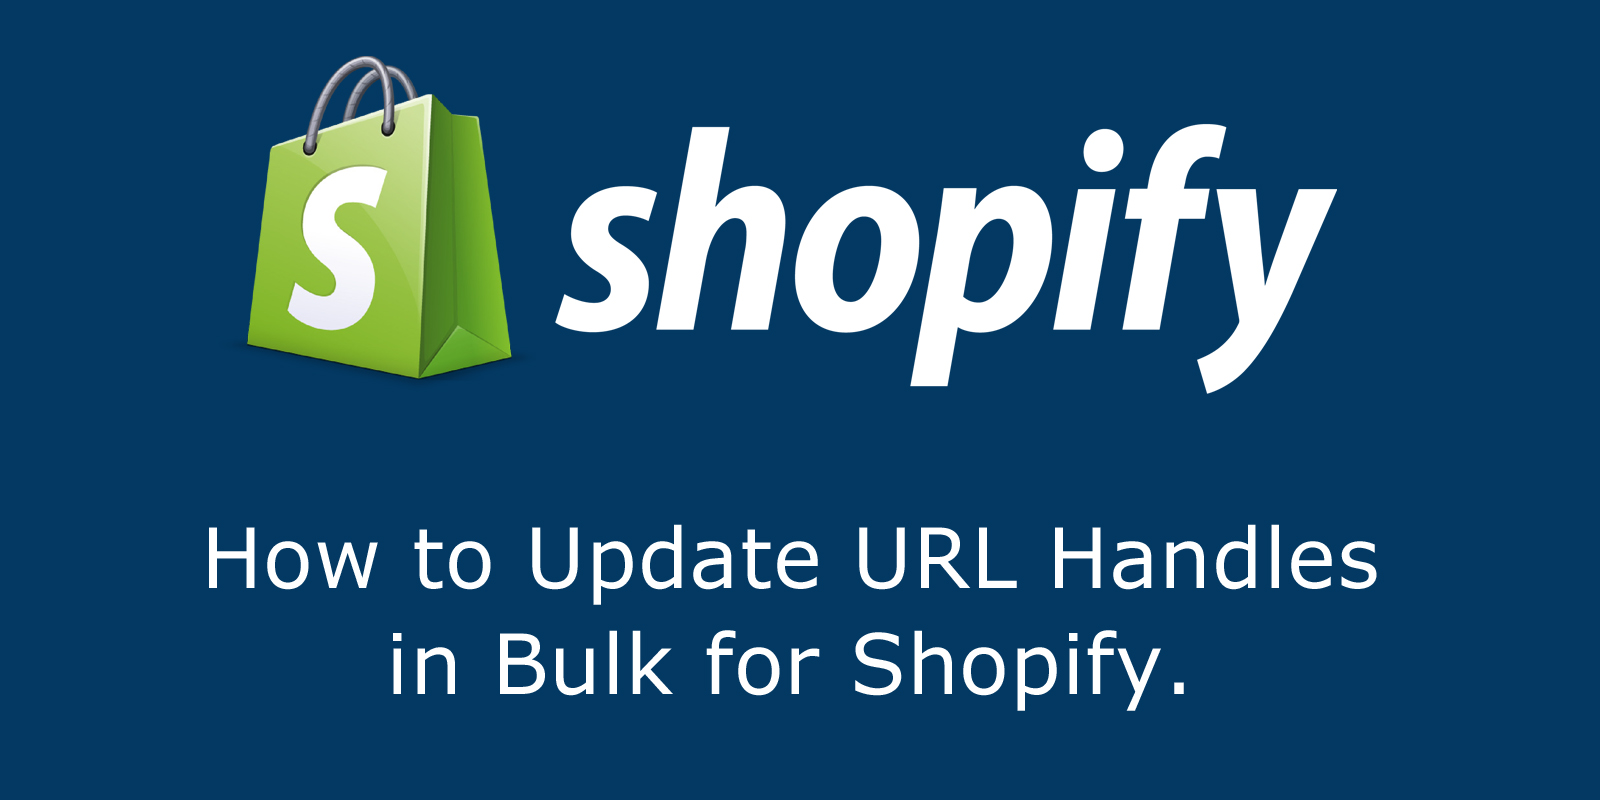 How to Update URL Handles in Bulk for Shopify.